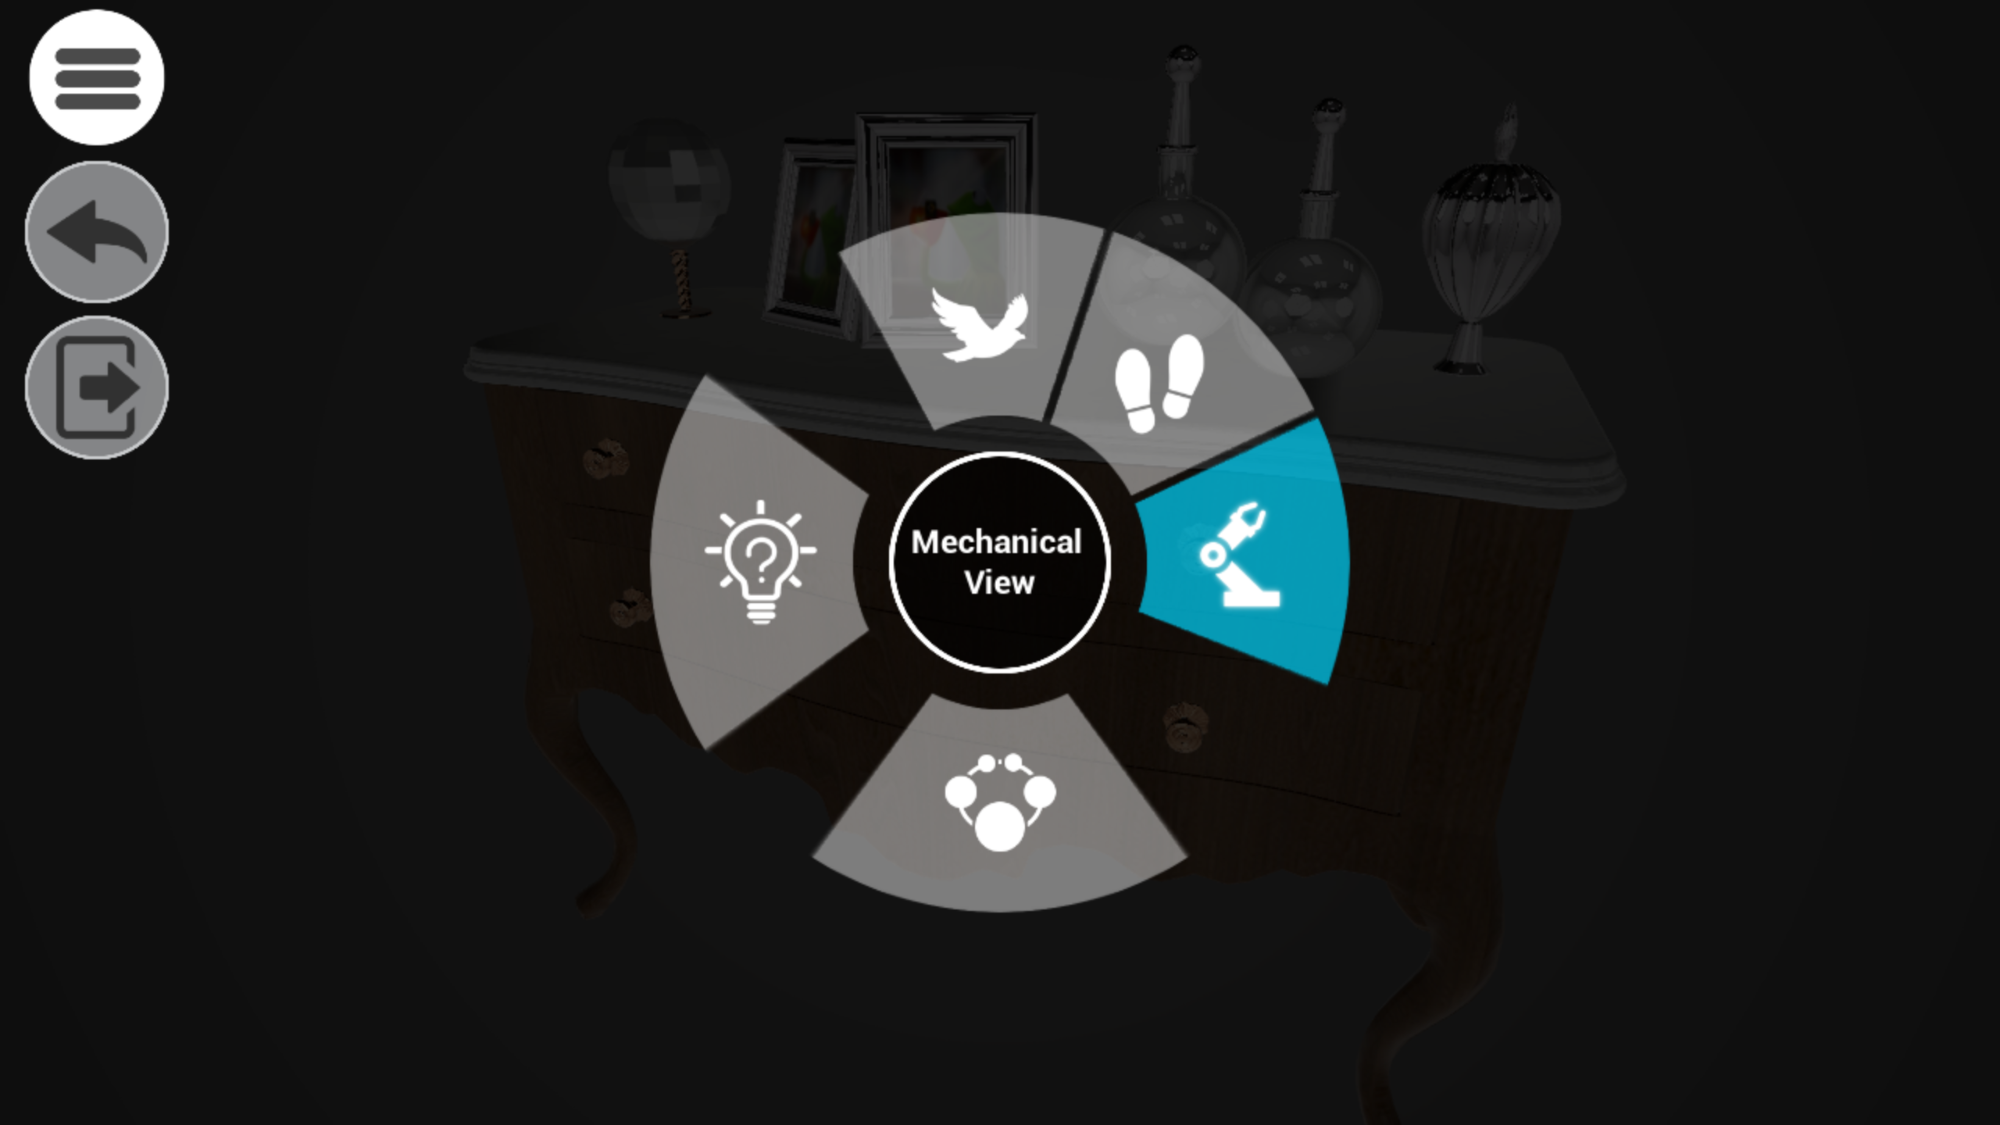 Screenshot_20171211-113505.png